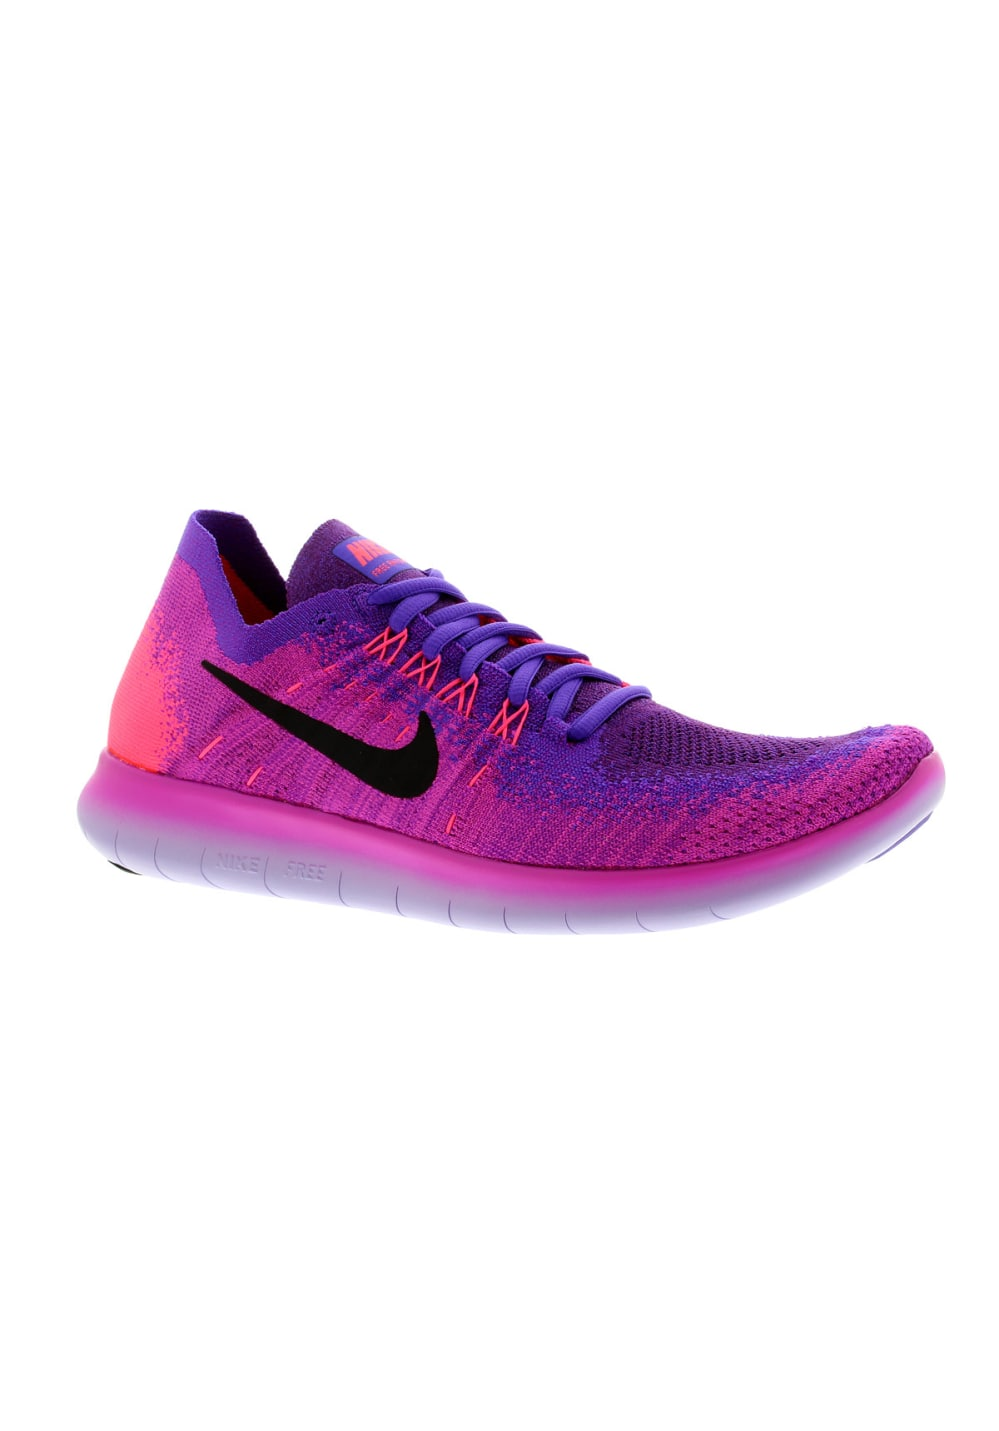 économiser d82b6 9522c Nike Free RN Flyknit 2017 - Running shoes for Women - Purple